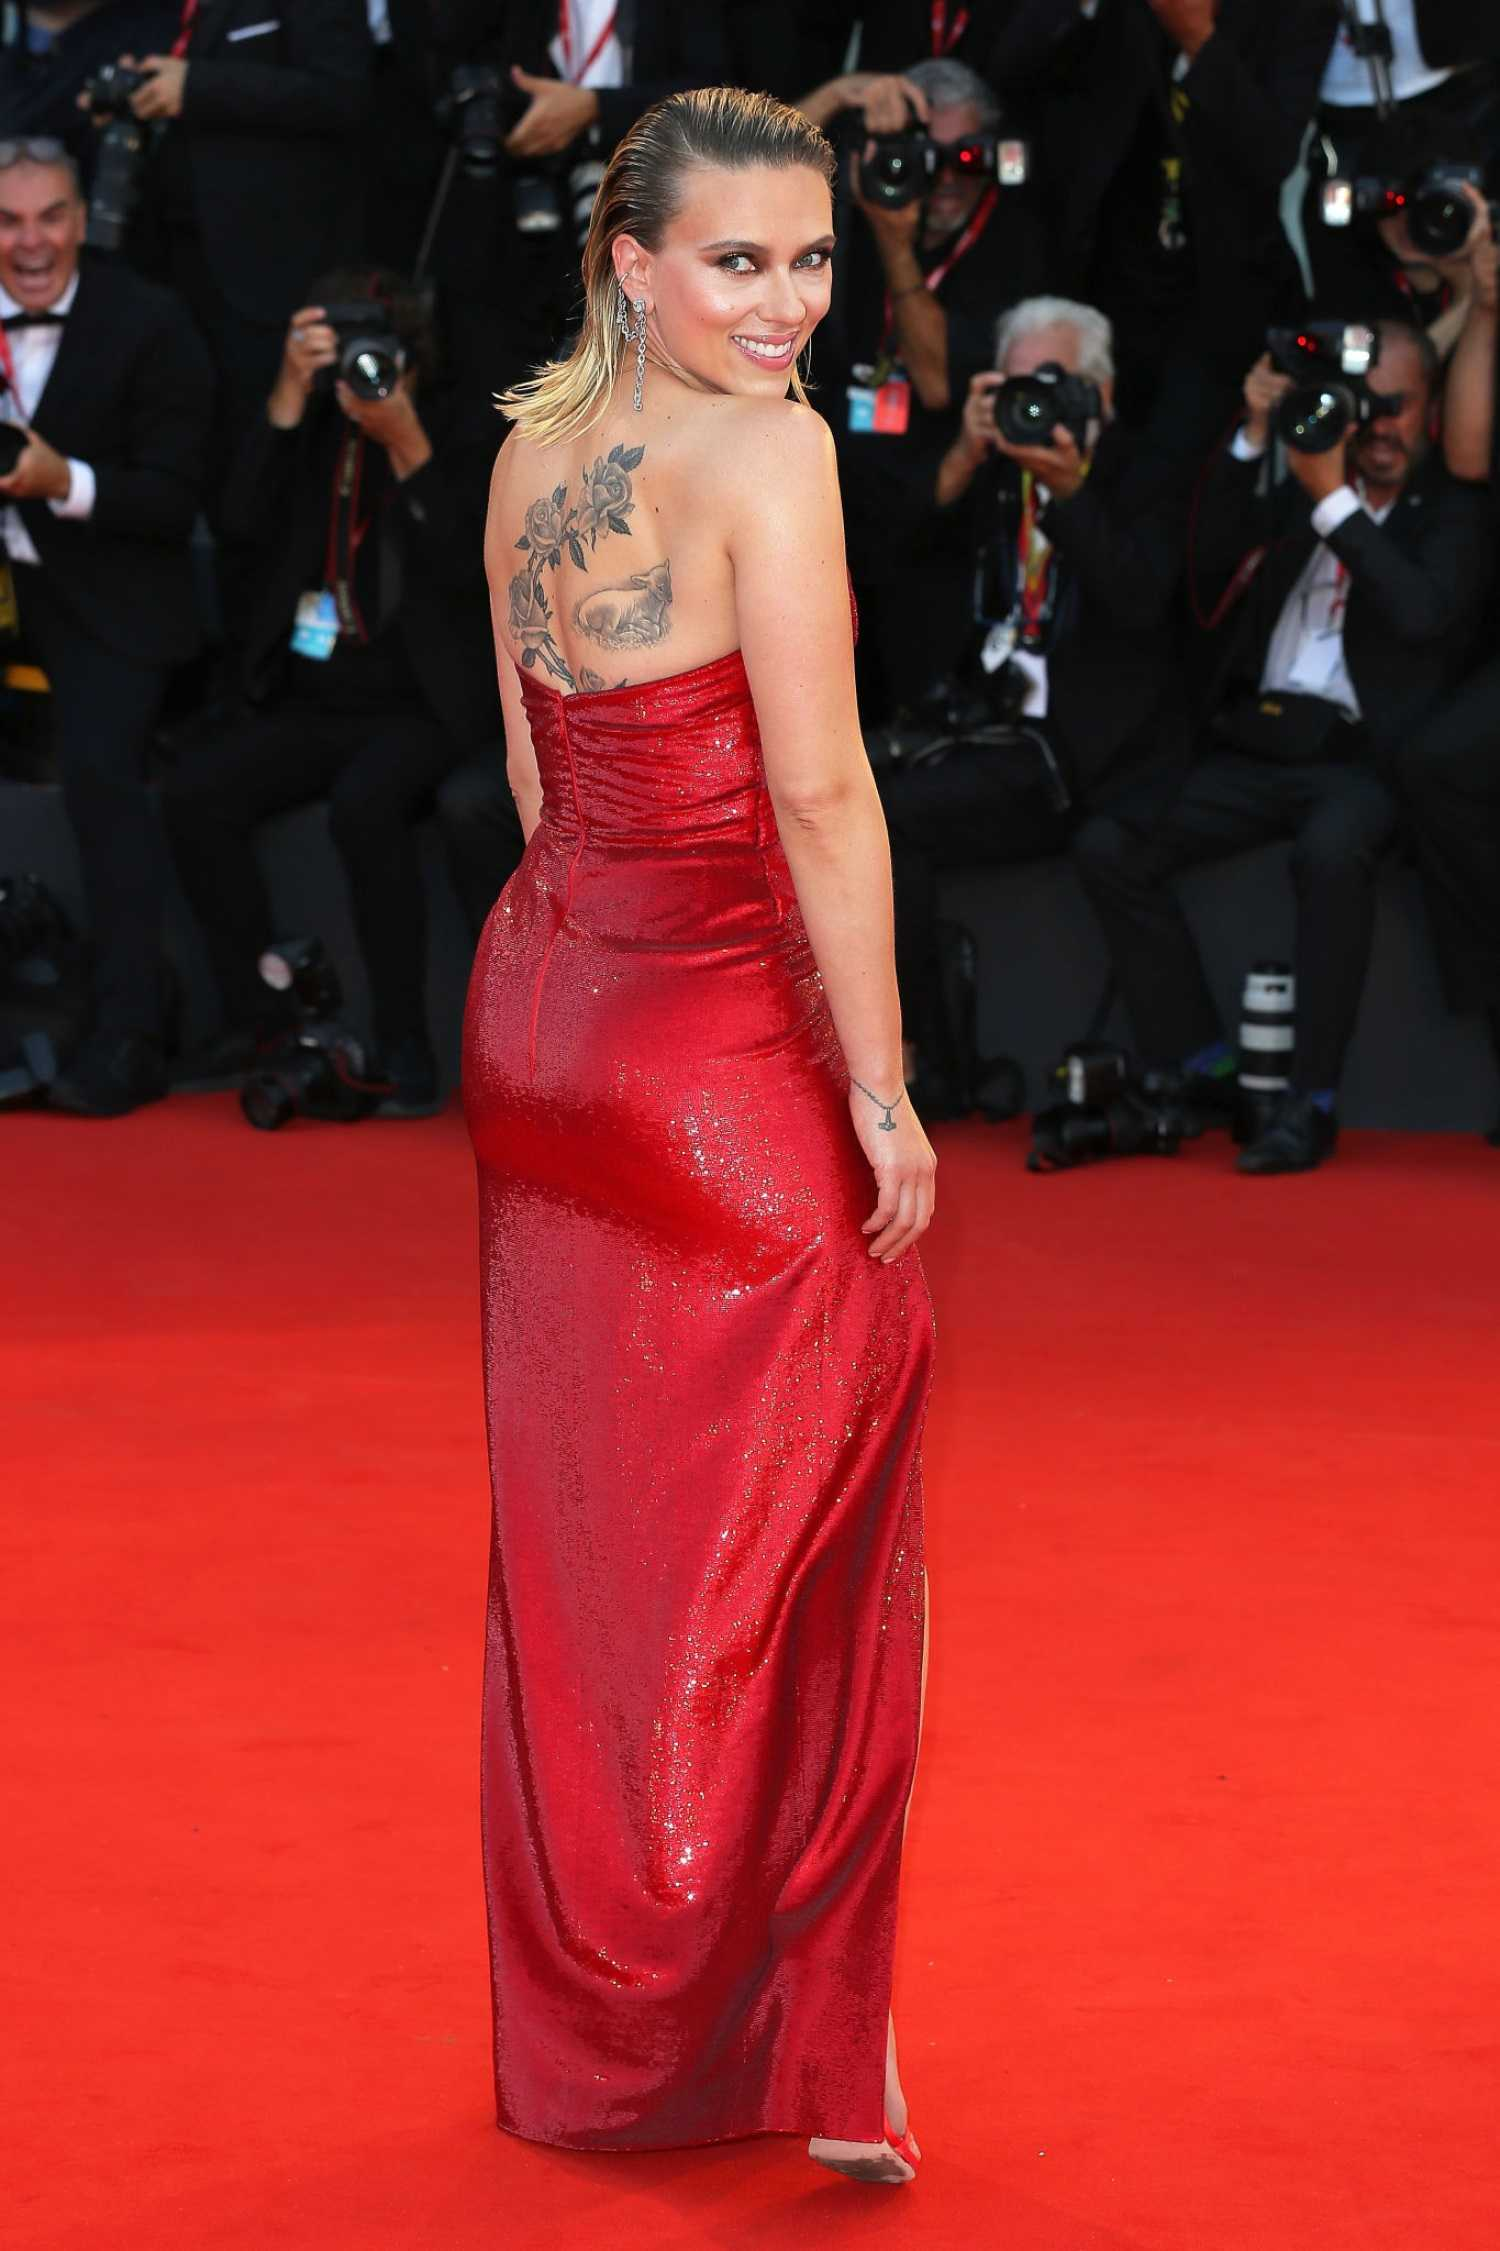 Scarlett Johansson In A Red Dress Attends The Marriage